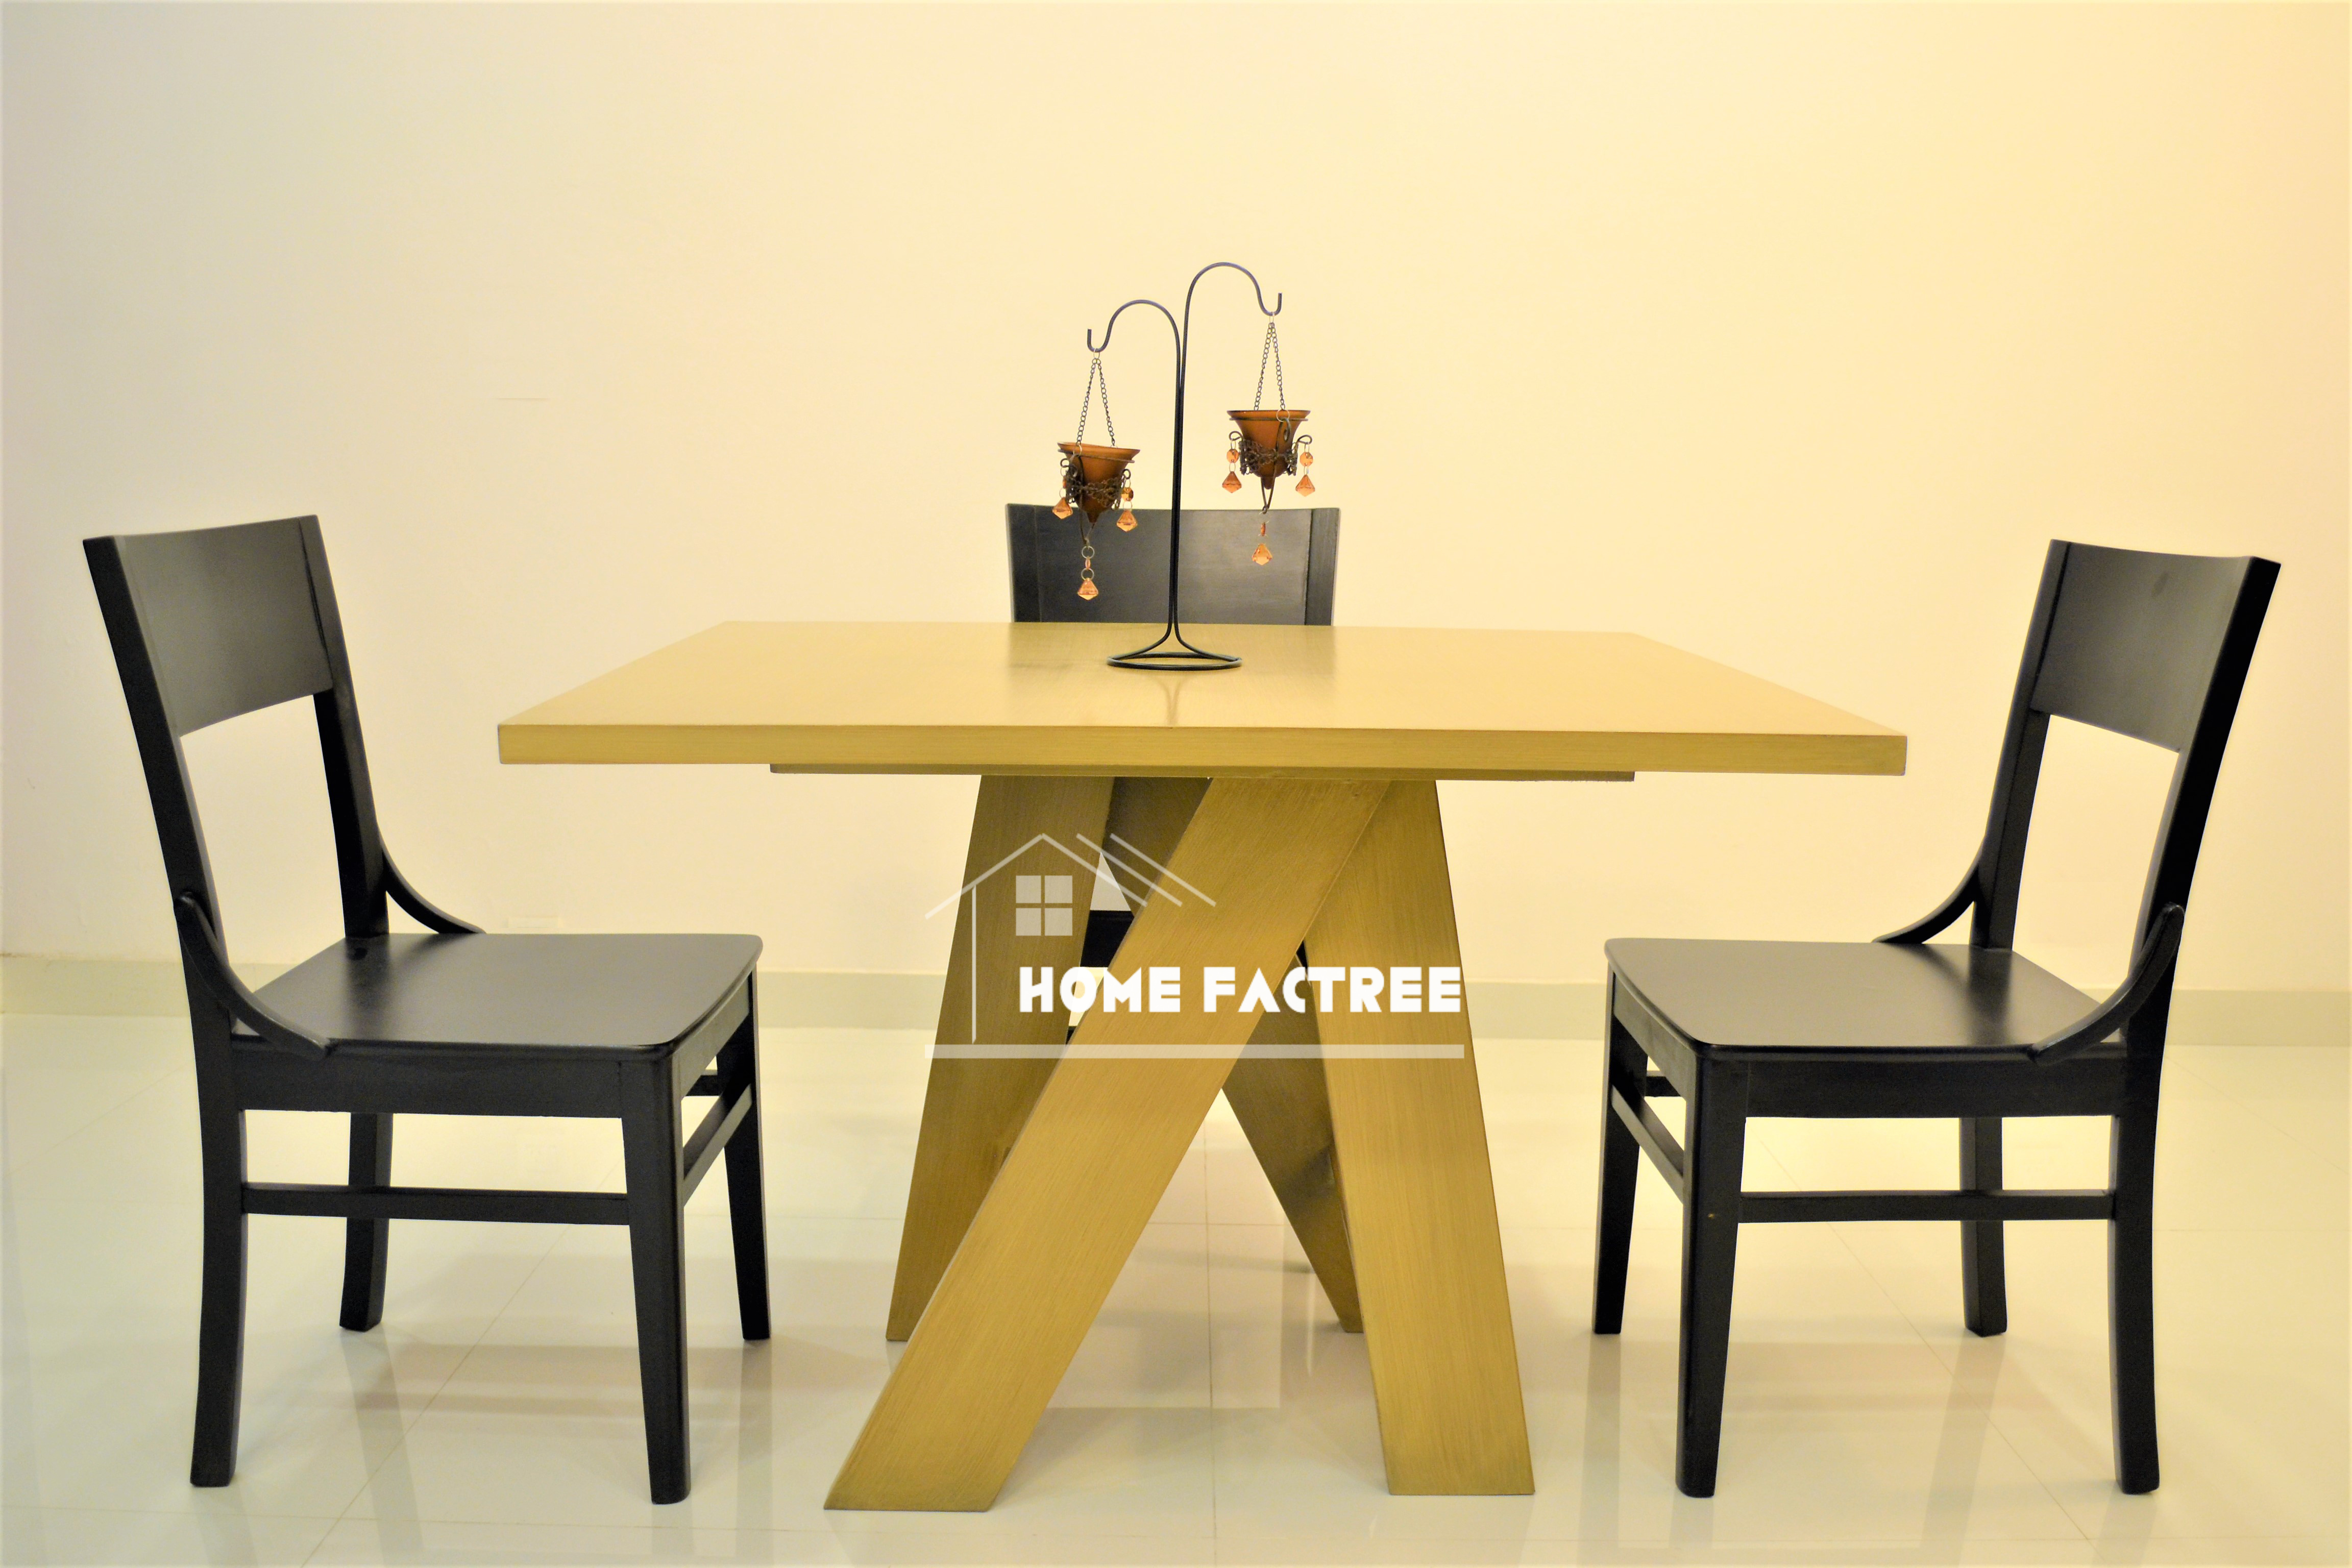 Dining Table Home Factree